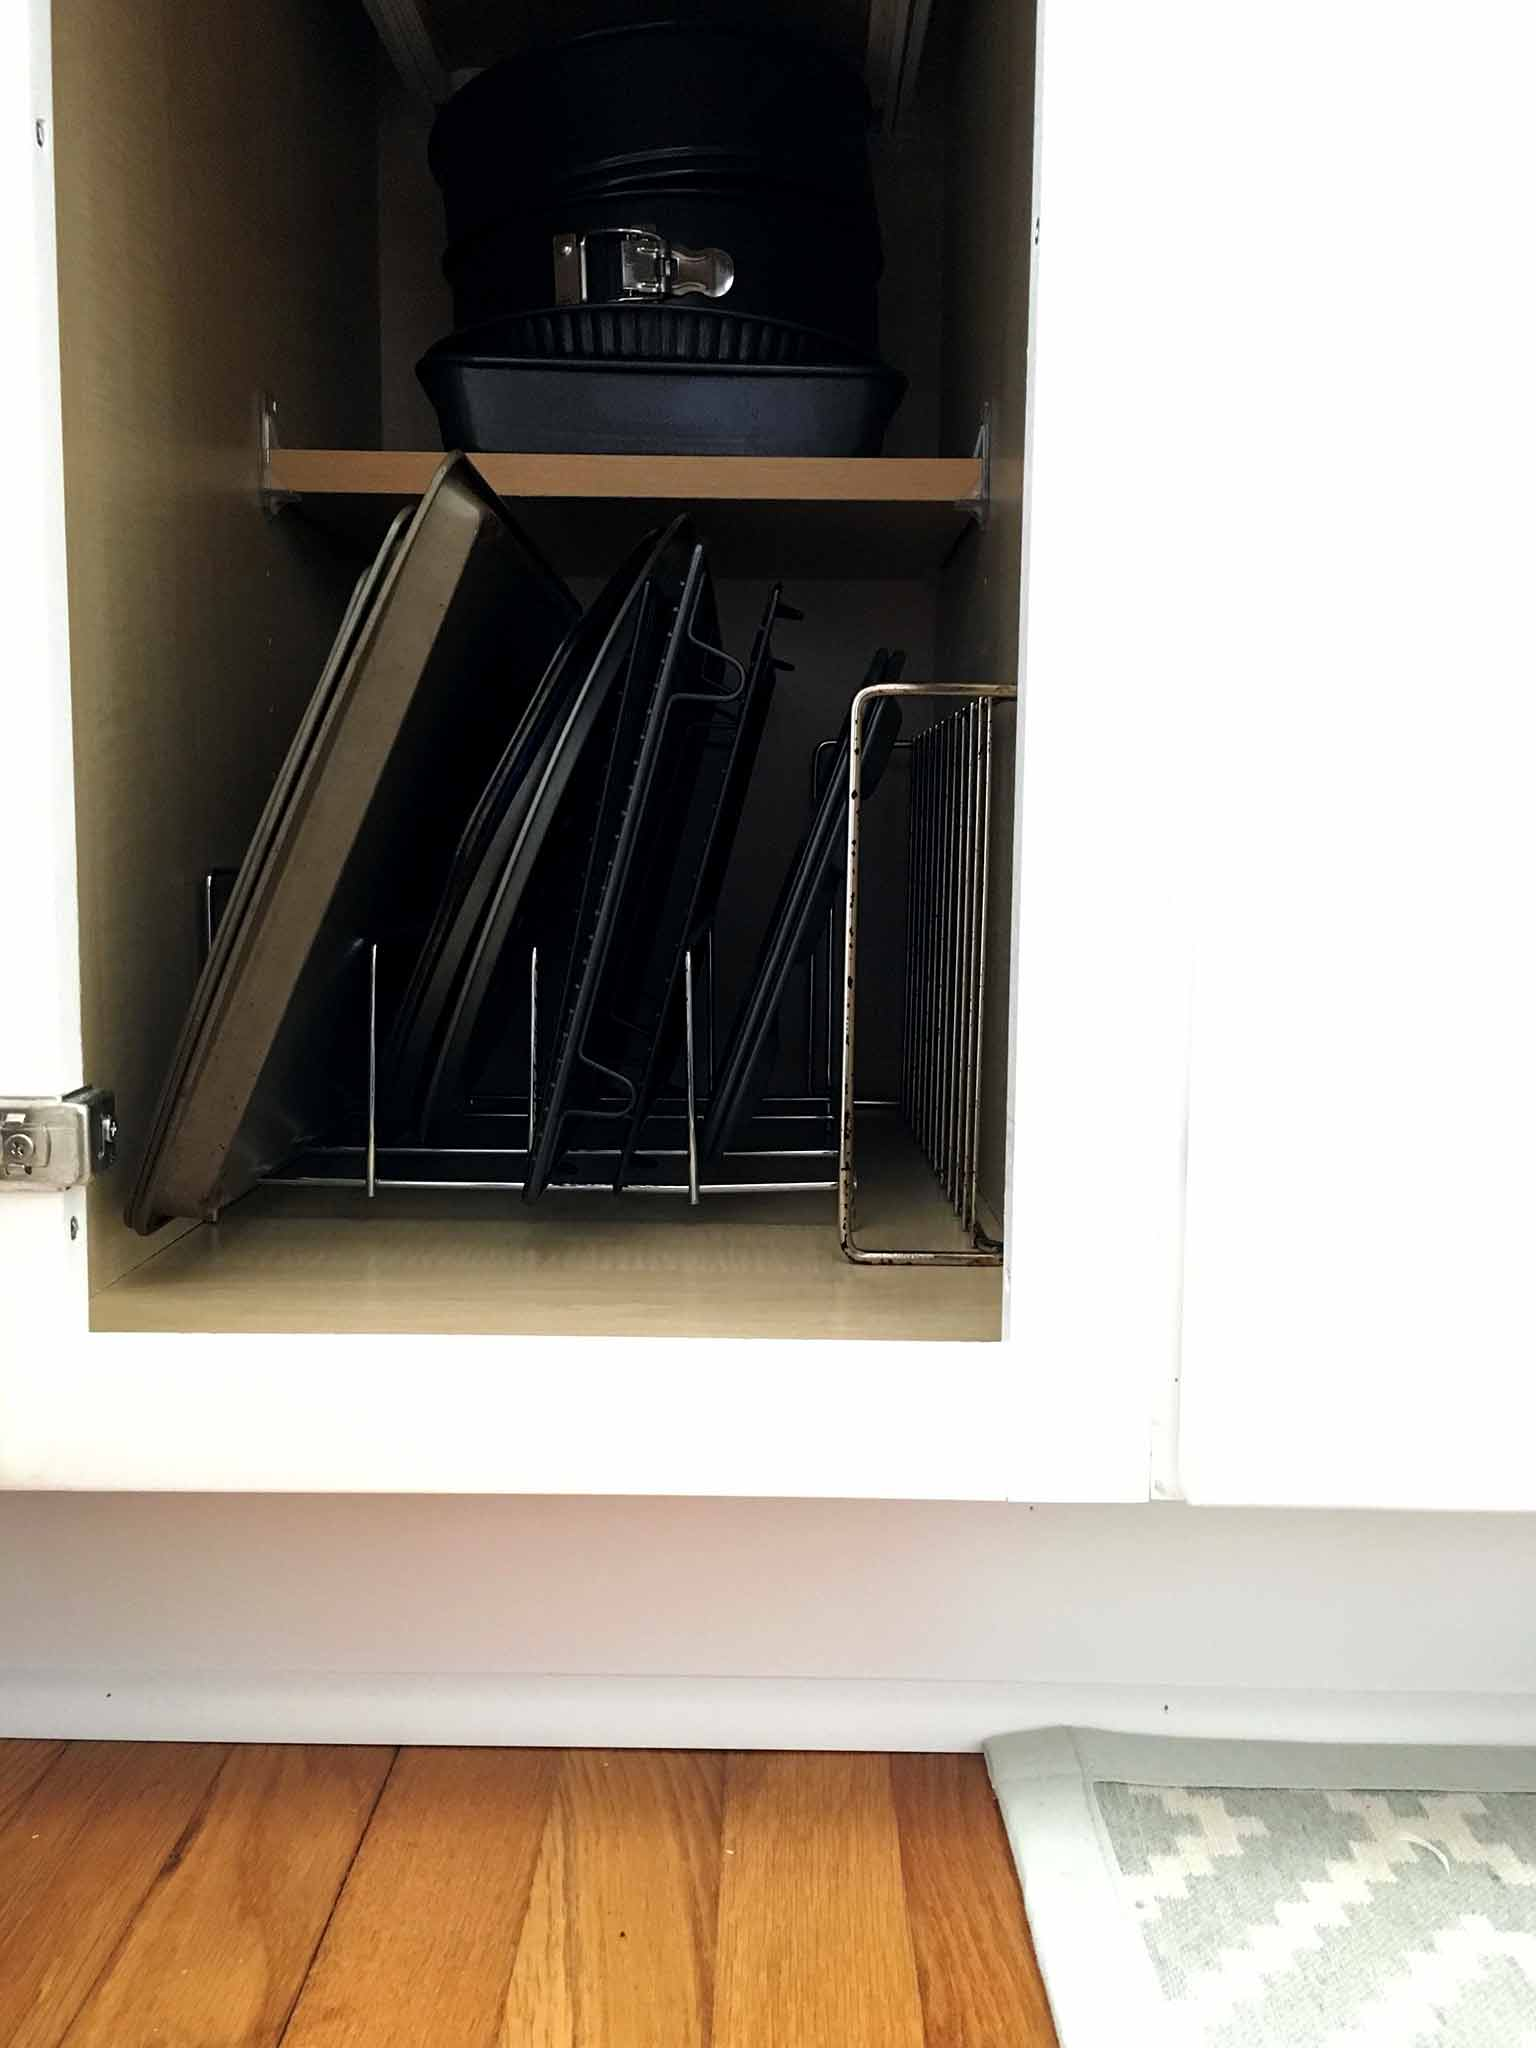 Vertical bakeware kitchen cabinet organizer - That Homebird Life Blog